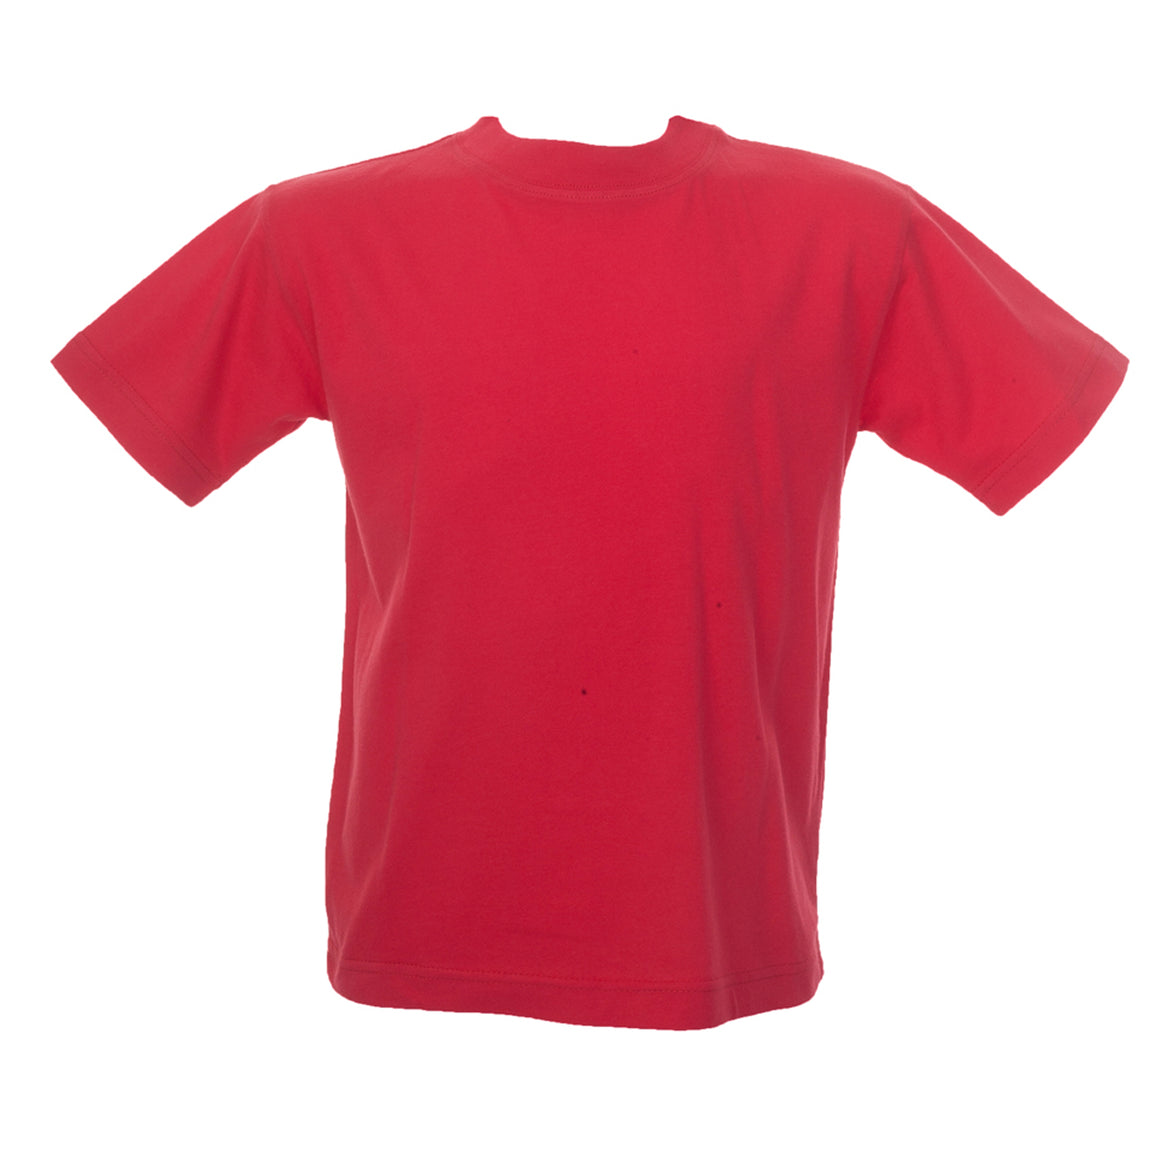 T Shirt in Red